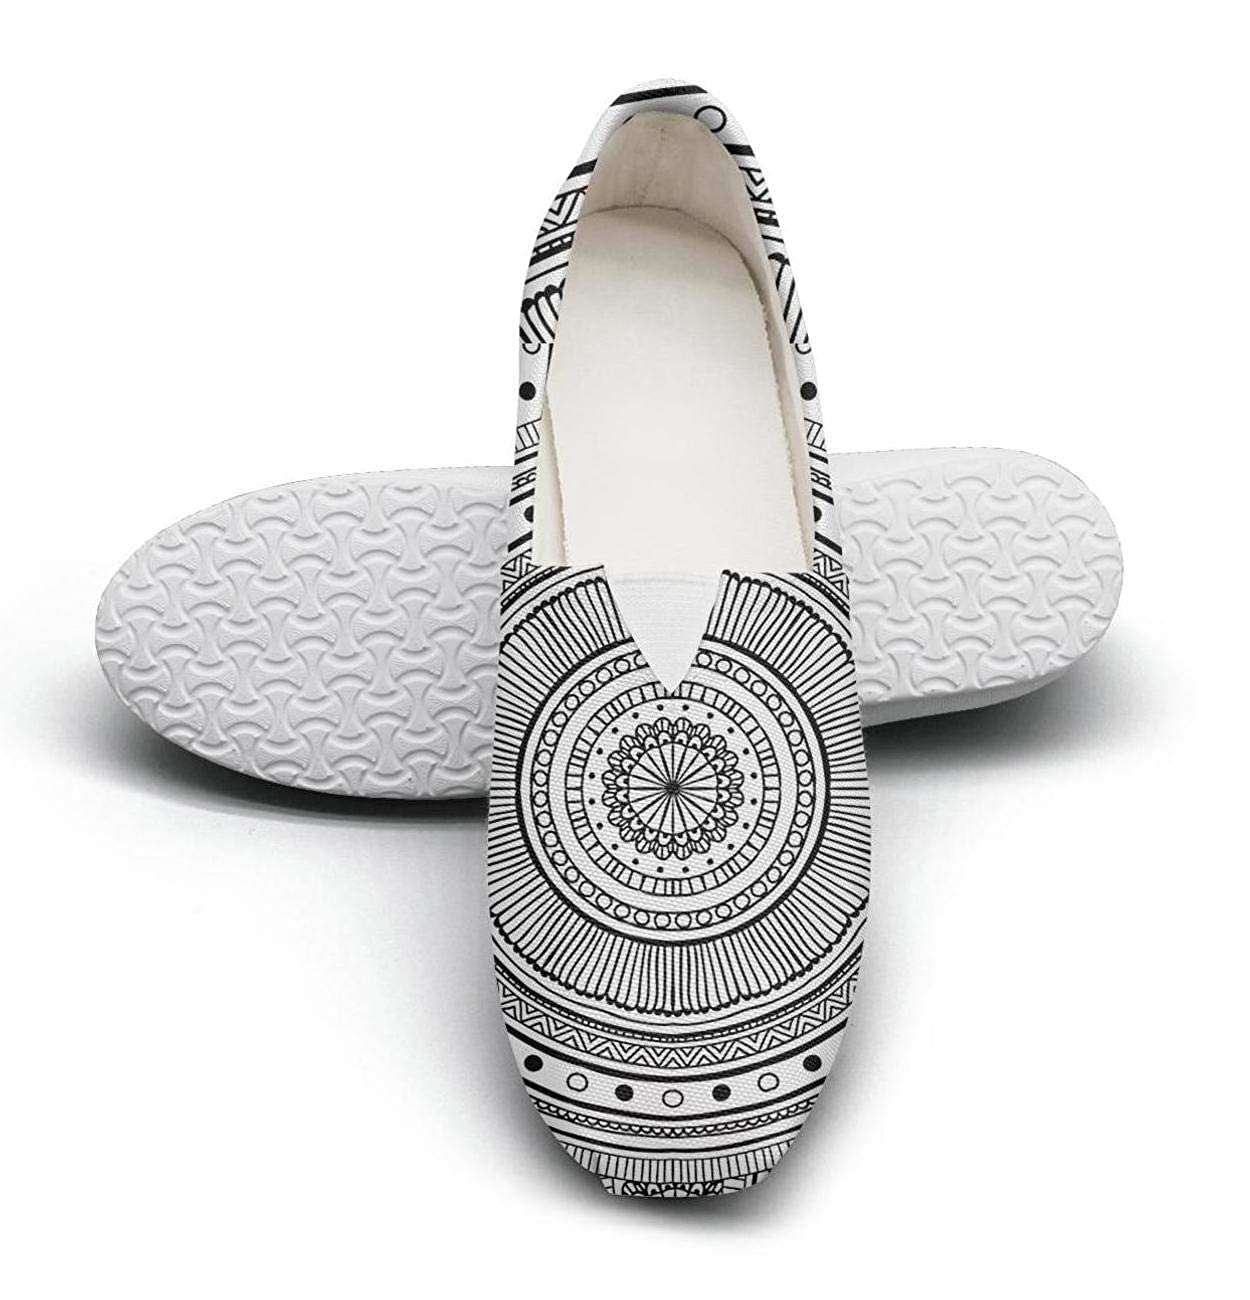 nkfbx Ethnic Black and White Circular Pattern Casual Slip-On Trainers for Women Exercising